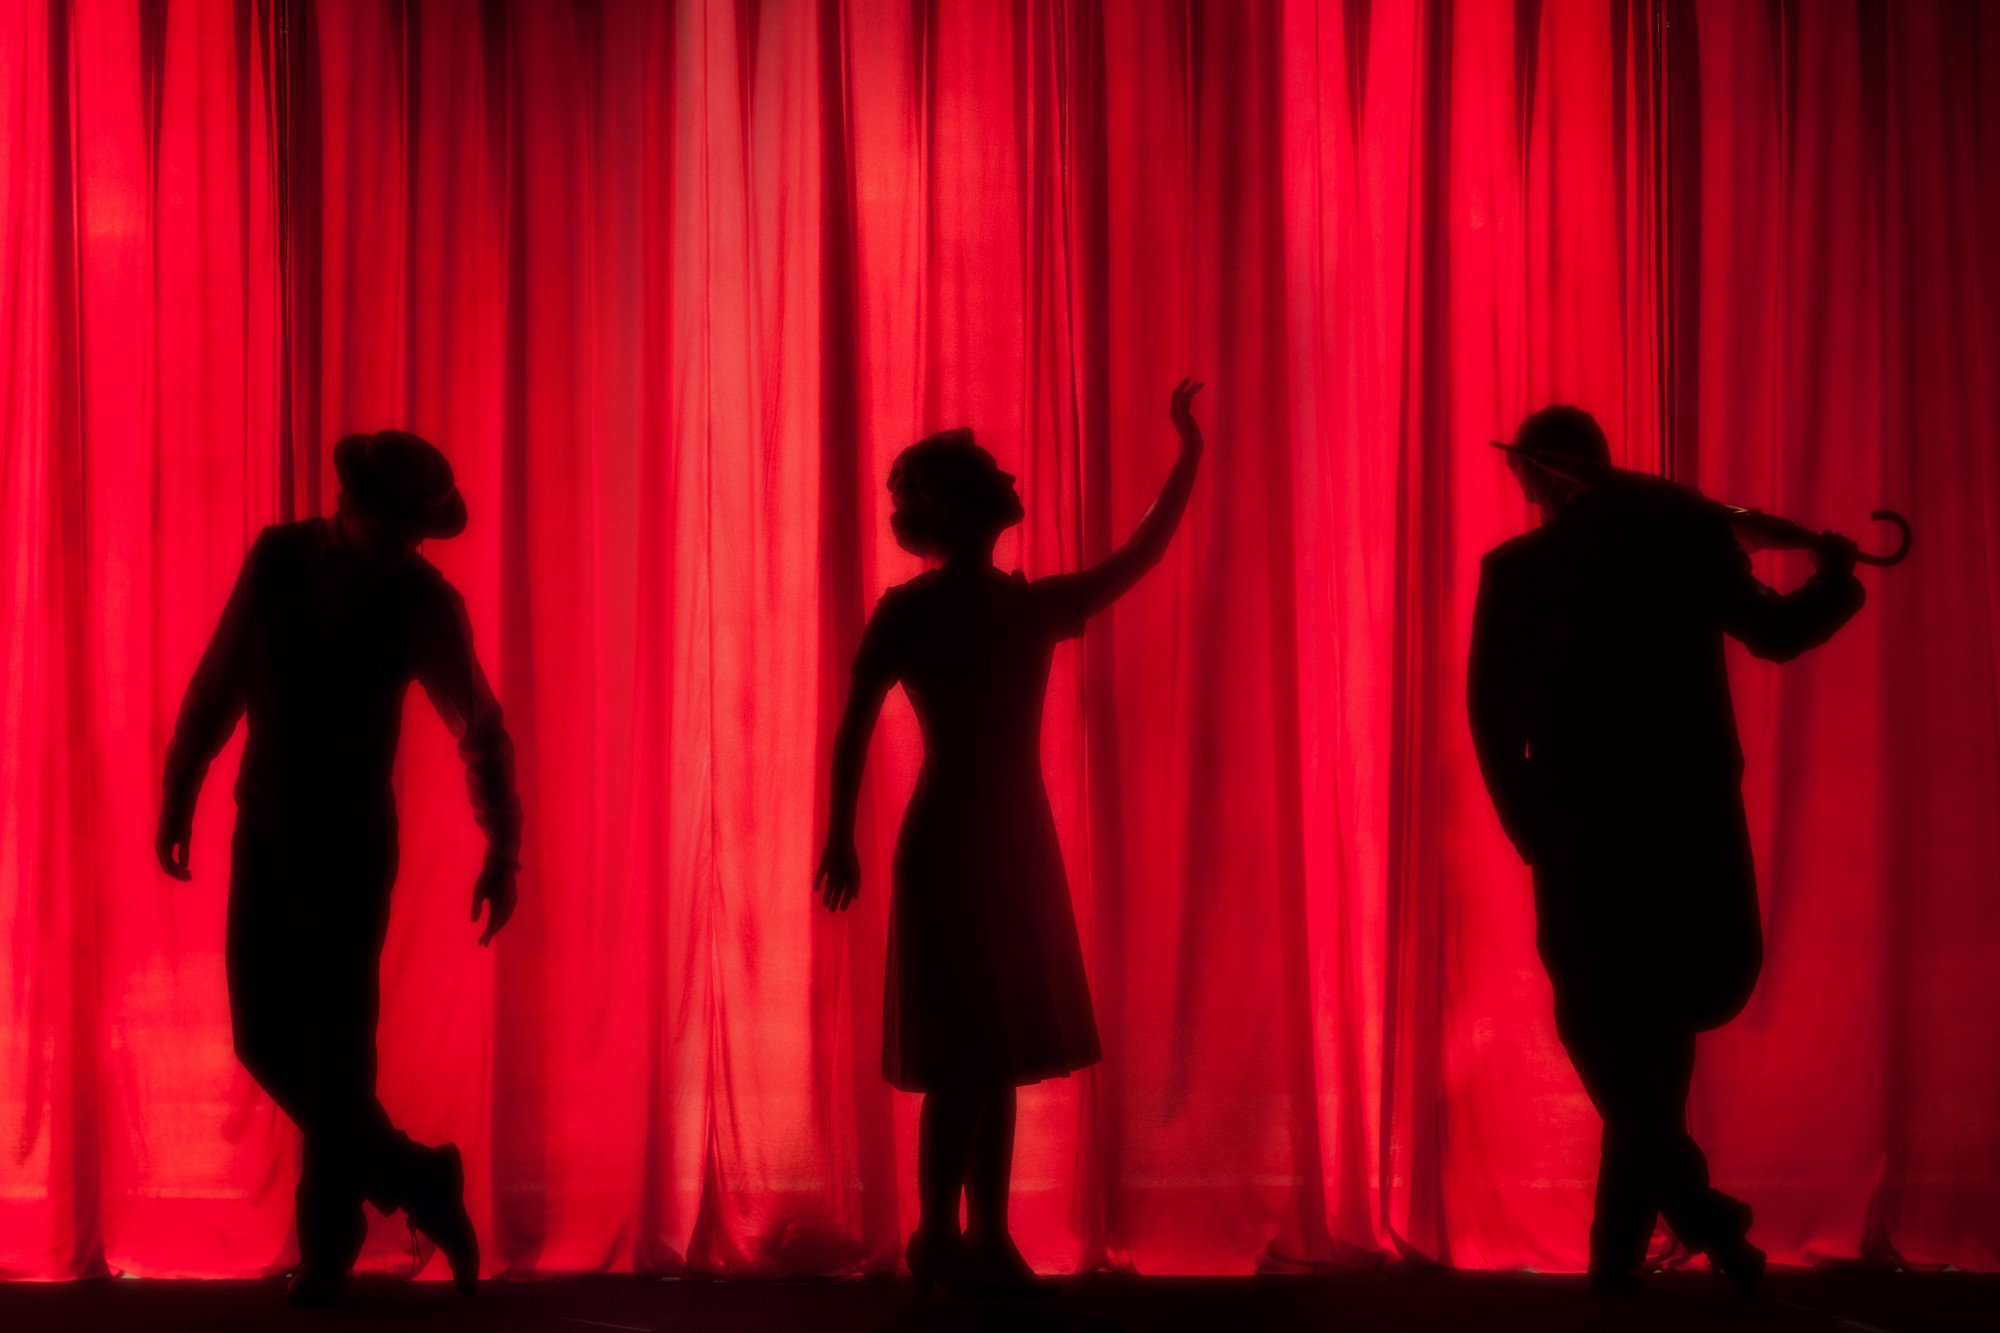 three black silhouettes against a red drapery background